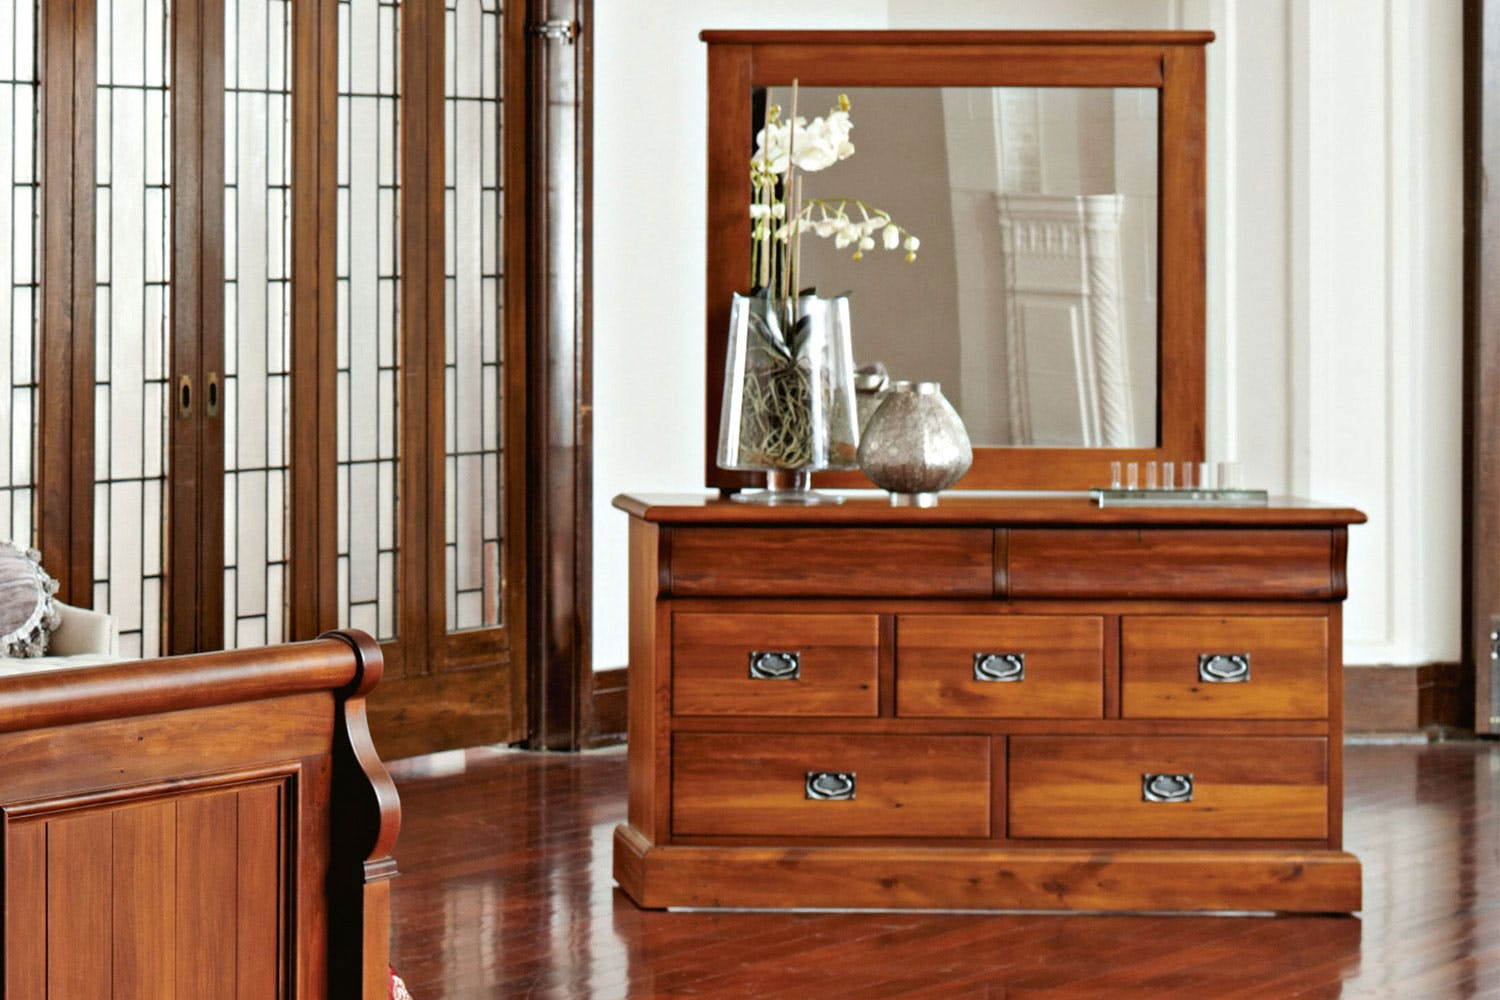 Clevedon 7 Drawer Dresser With Mirror By Woods